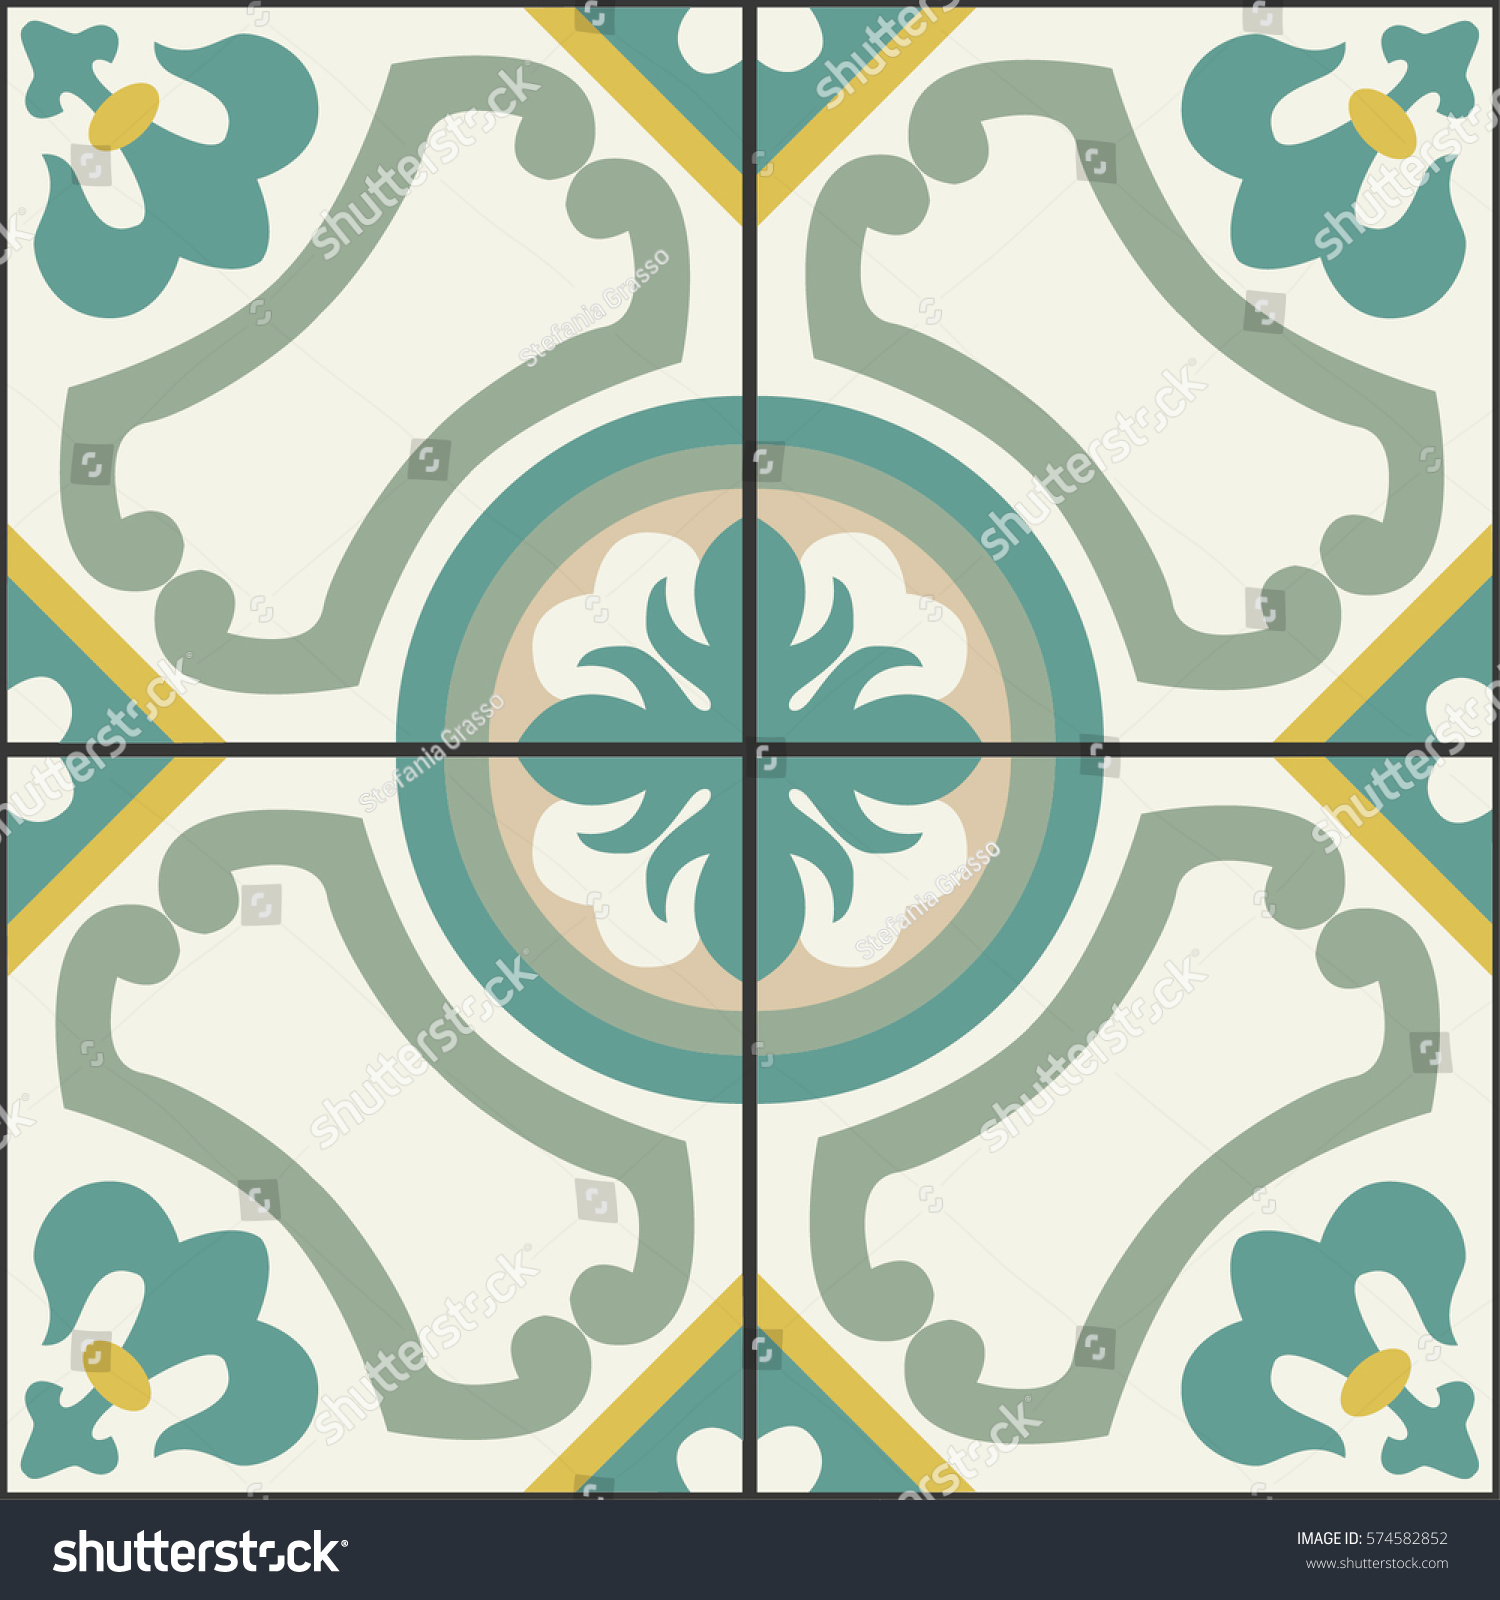 Geometrical pattern floor wall vintage decorative stock vector geometrical pattern for floor and wall vintage decorative style for modern floor and walls tiles dailygadgetfo Images